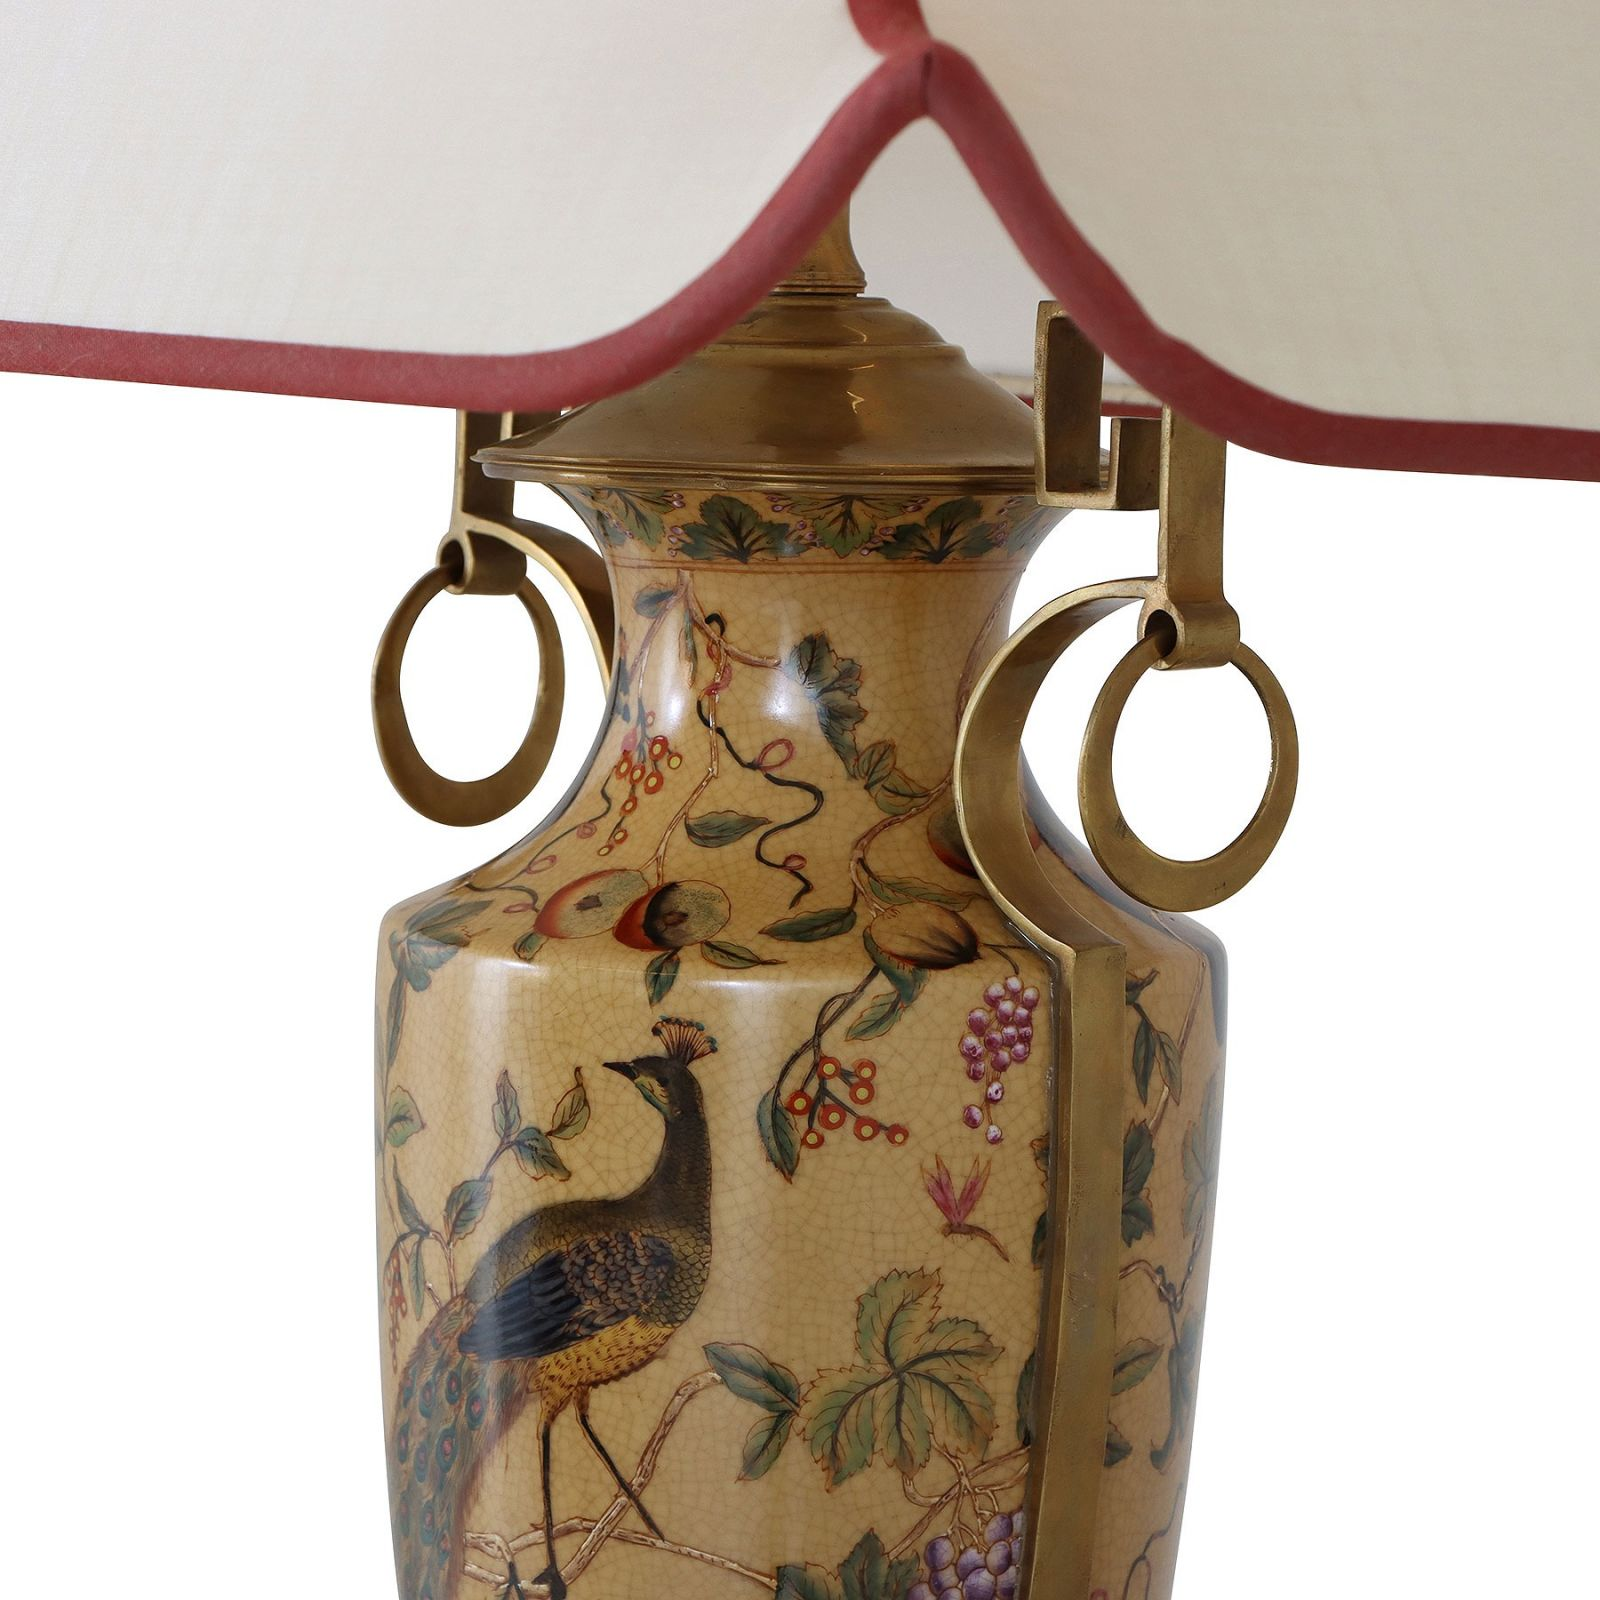 Porcelain vase table lamp with hand painted peacock and floral design